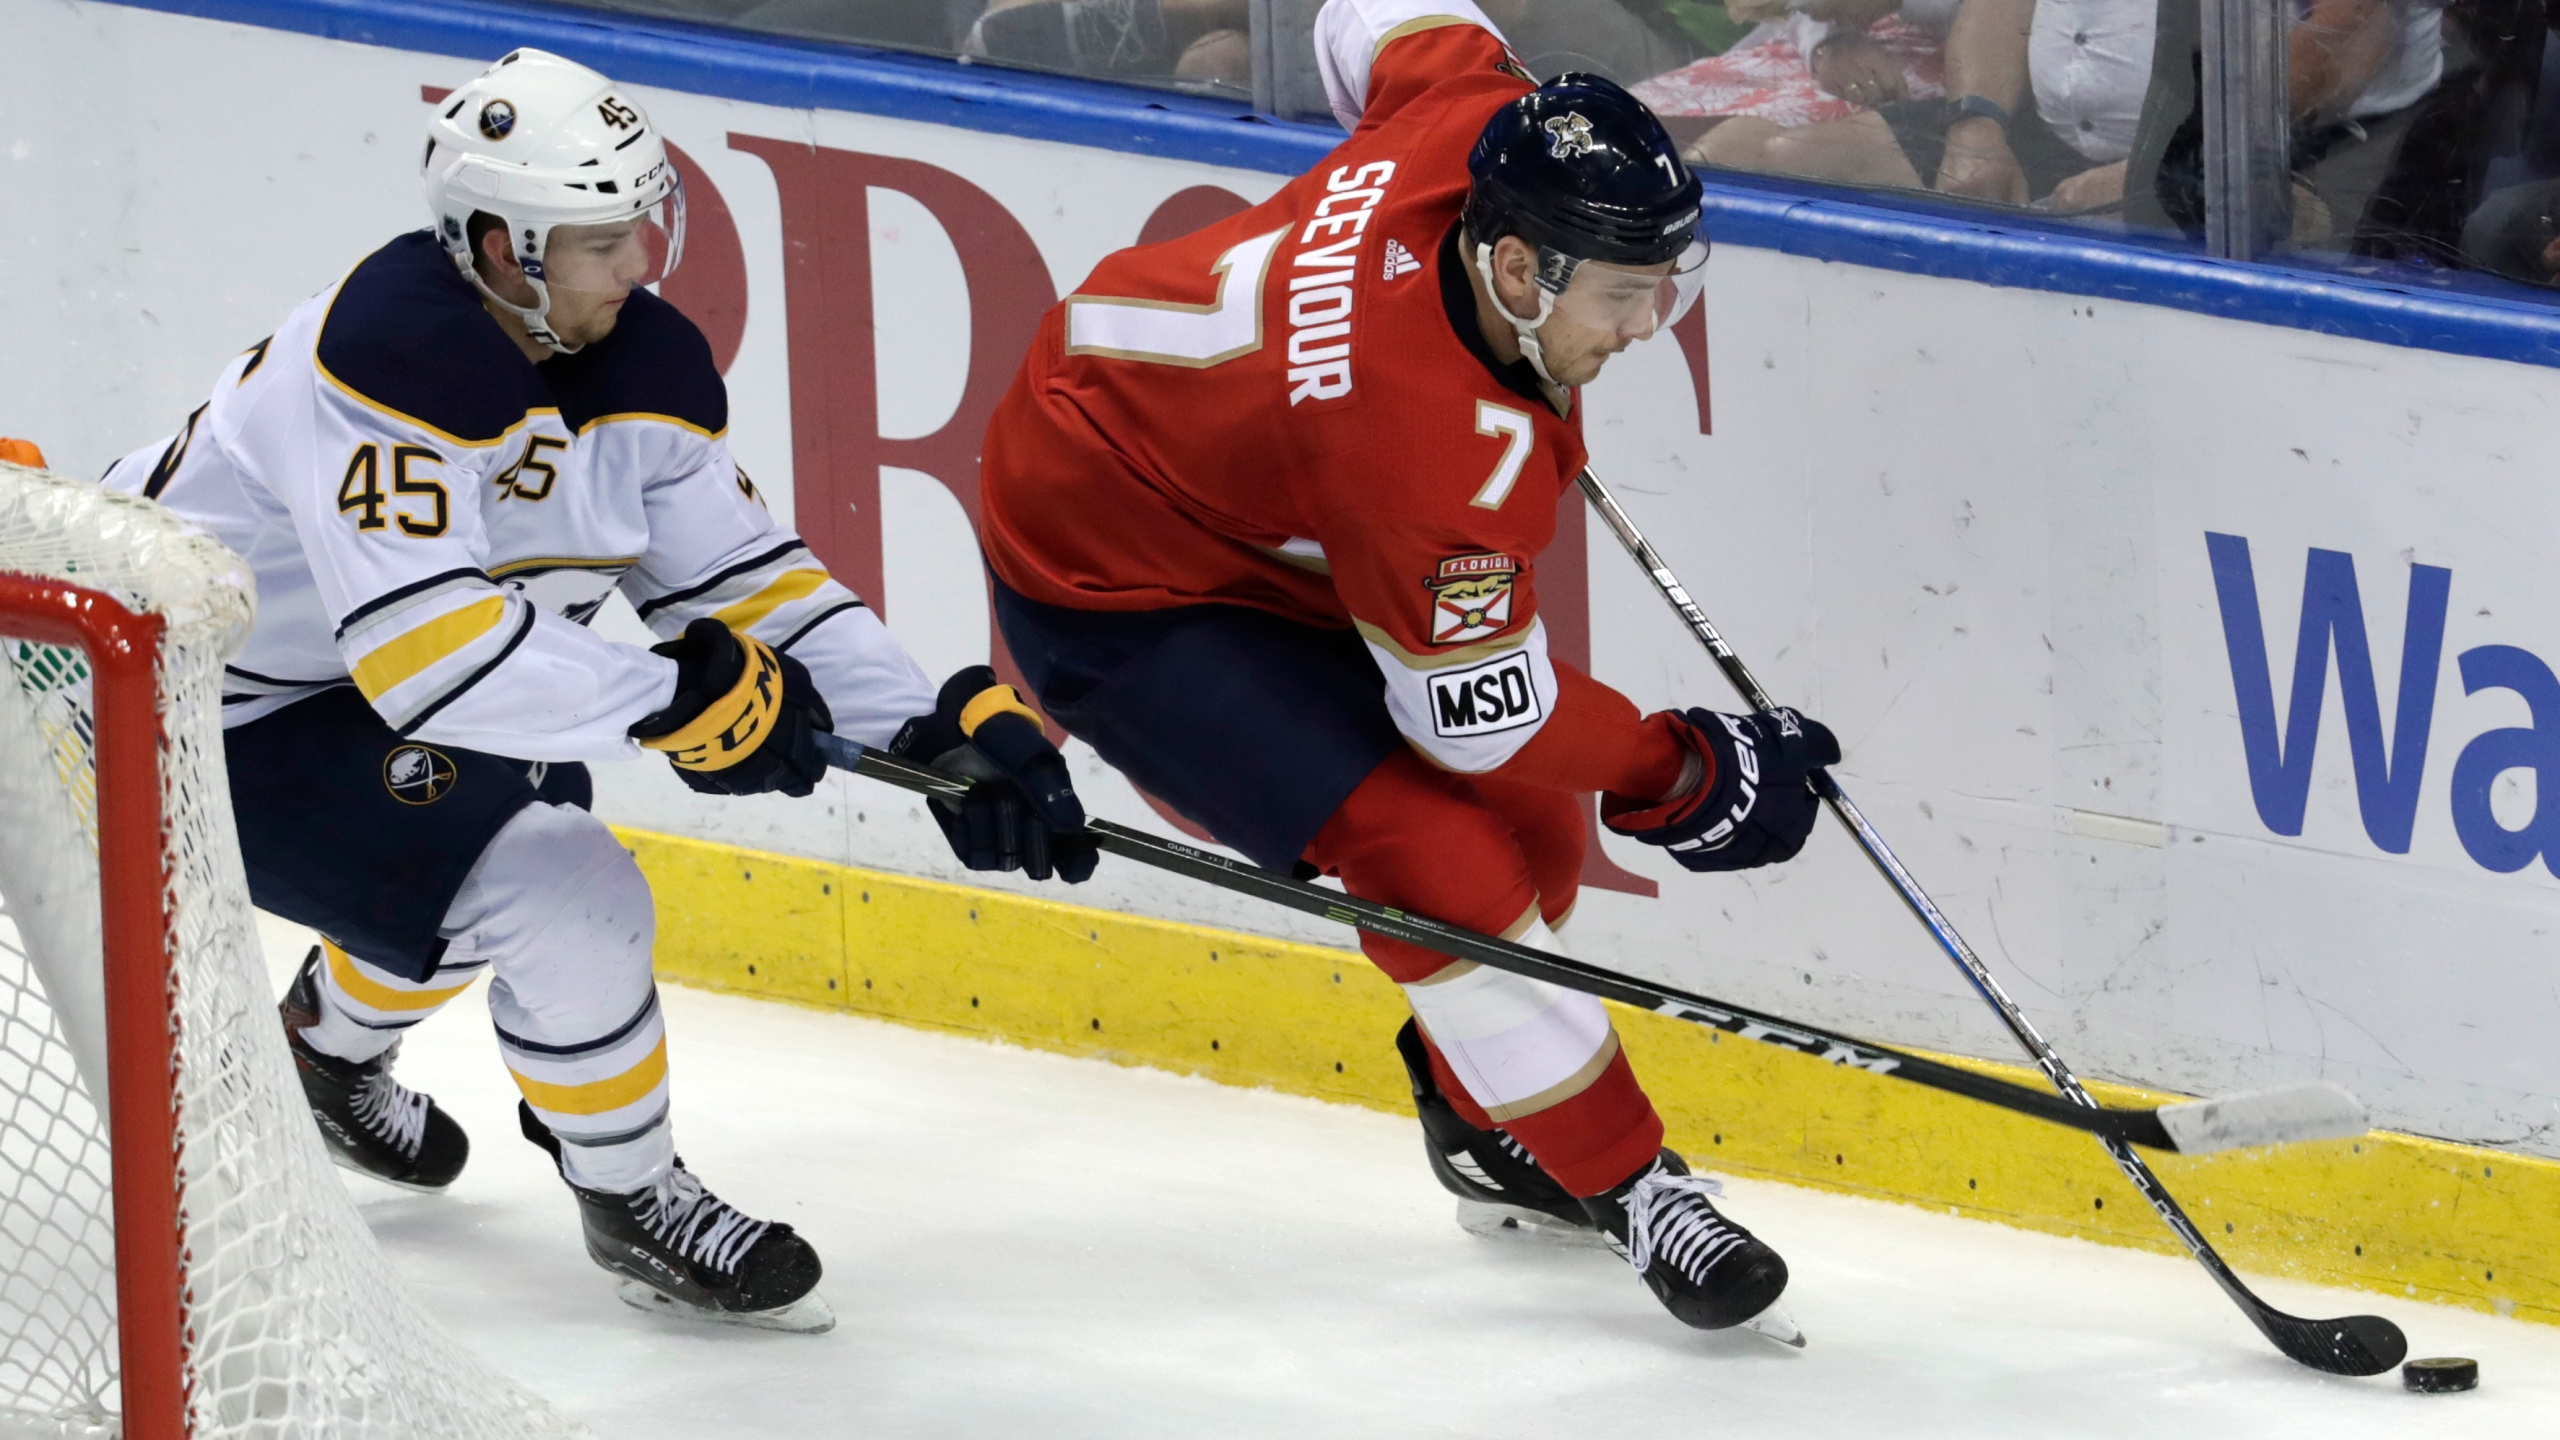 Sabres Panthers Hockey_1523151825592